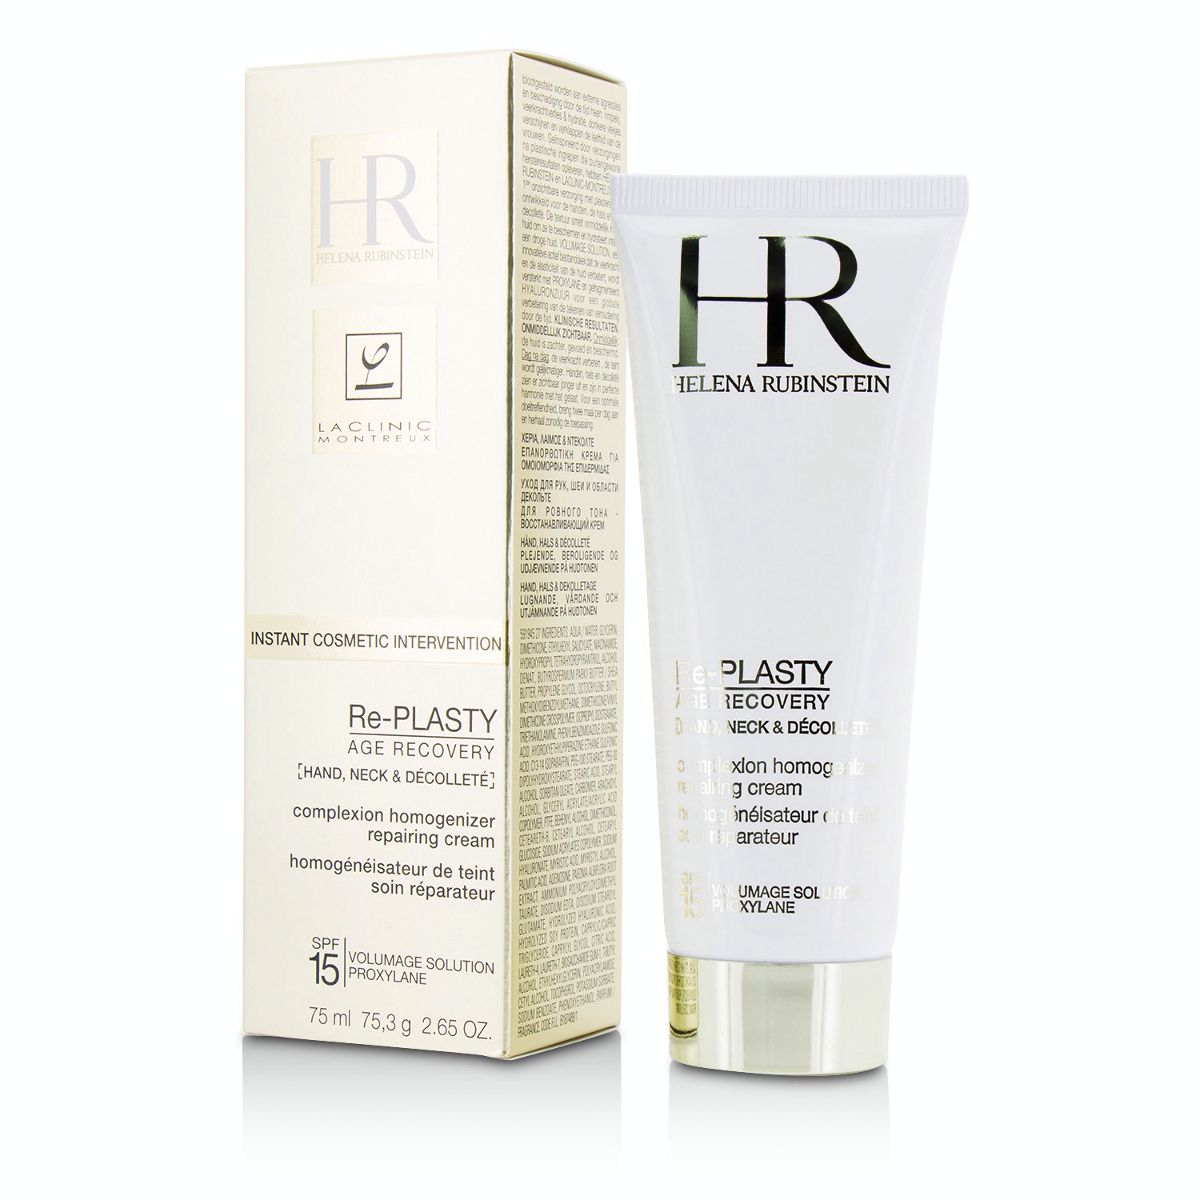 Re-Plasty Age Recovery Complexion Homogenizer Repairing Cream SPF15 - For Hand Neck  Decollete Helena Rubinstein Image